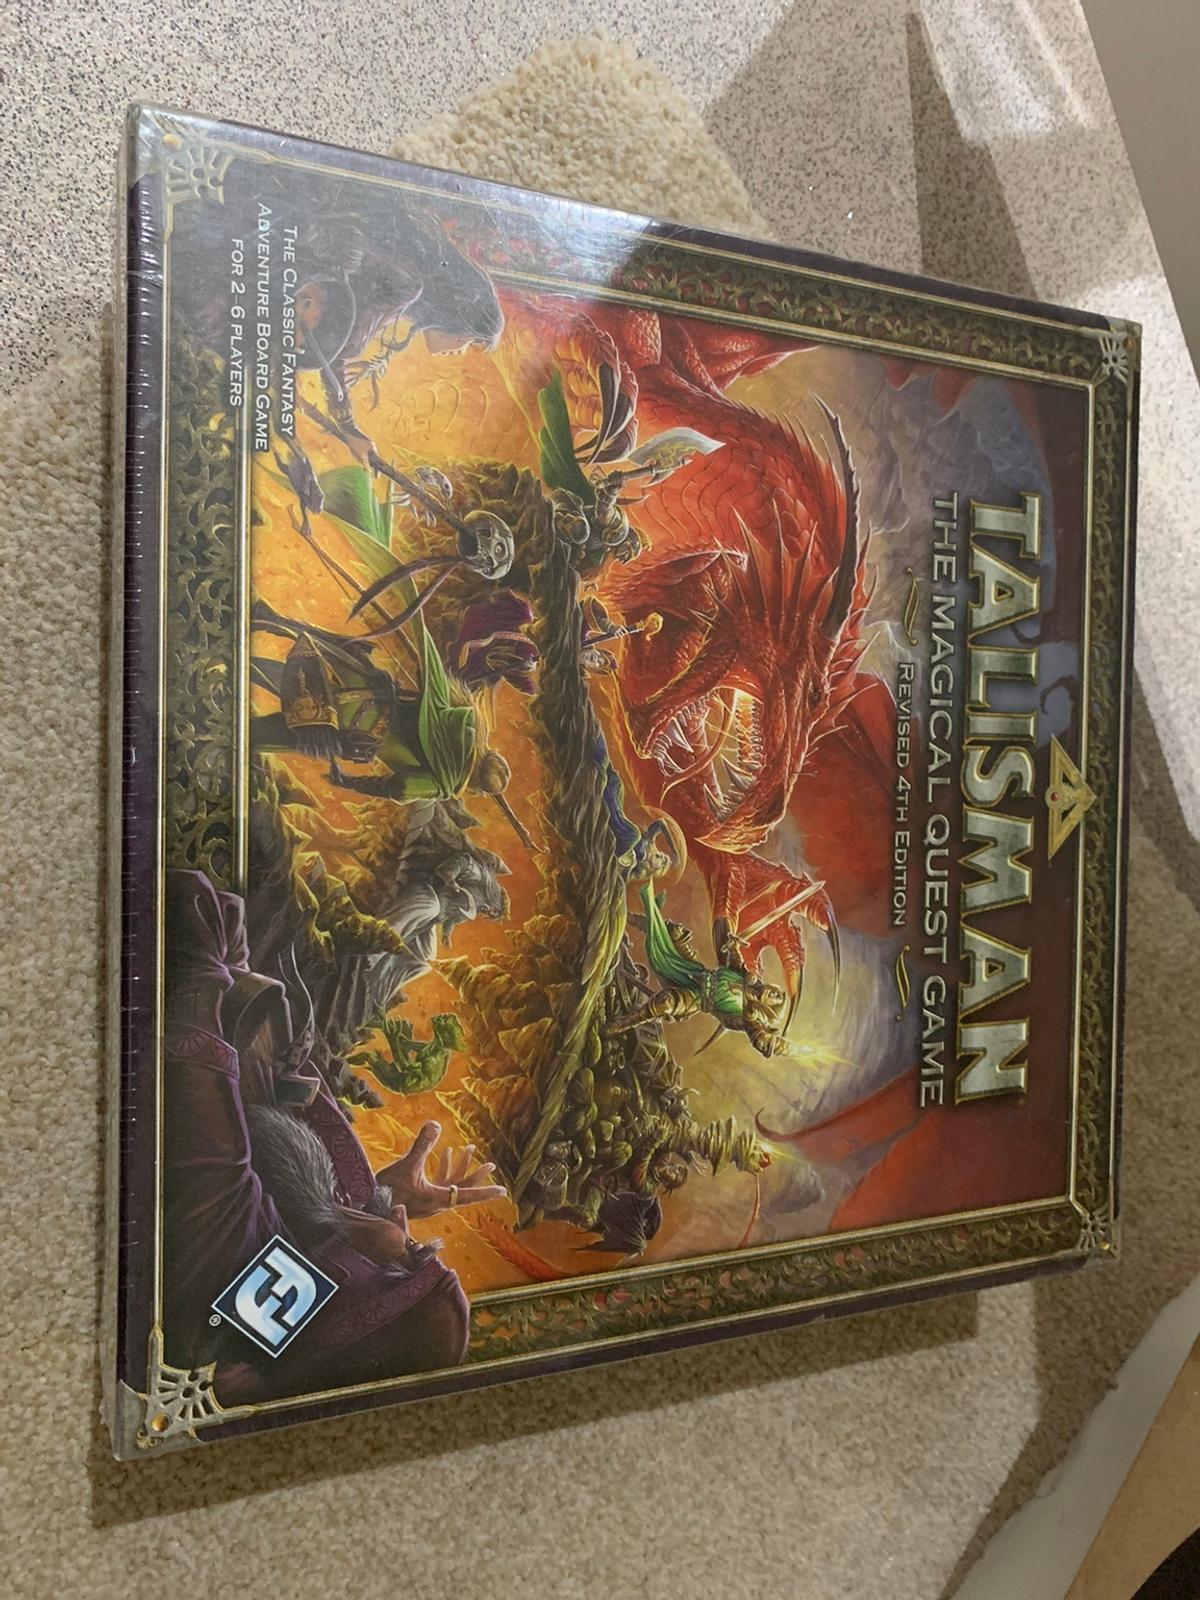 Talisman: The Magical Quest Game is a fantasy-themed adventure board game for two to six players, originally designed and produced by Games Workshop. From 2008 to 2017 Fantasy Flight Games produced Talisman under license from Games Workshop.  Brand New and Sealed  RRP: £48